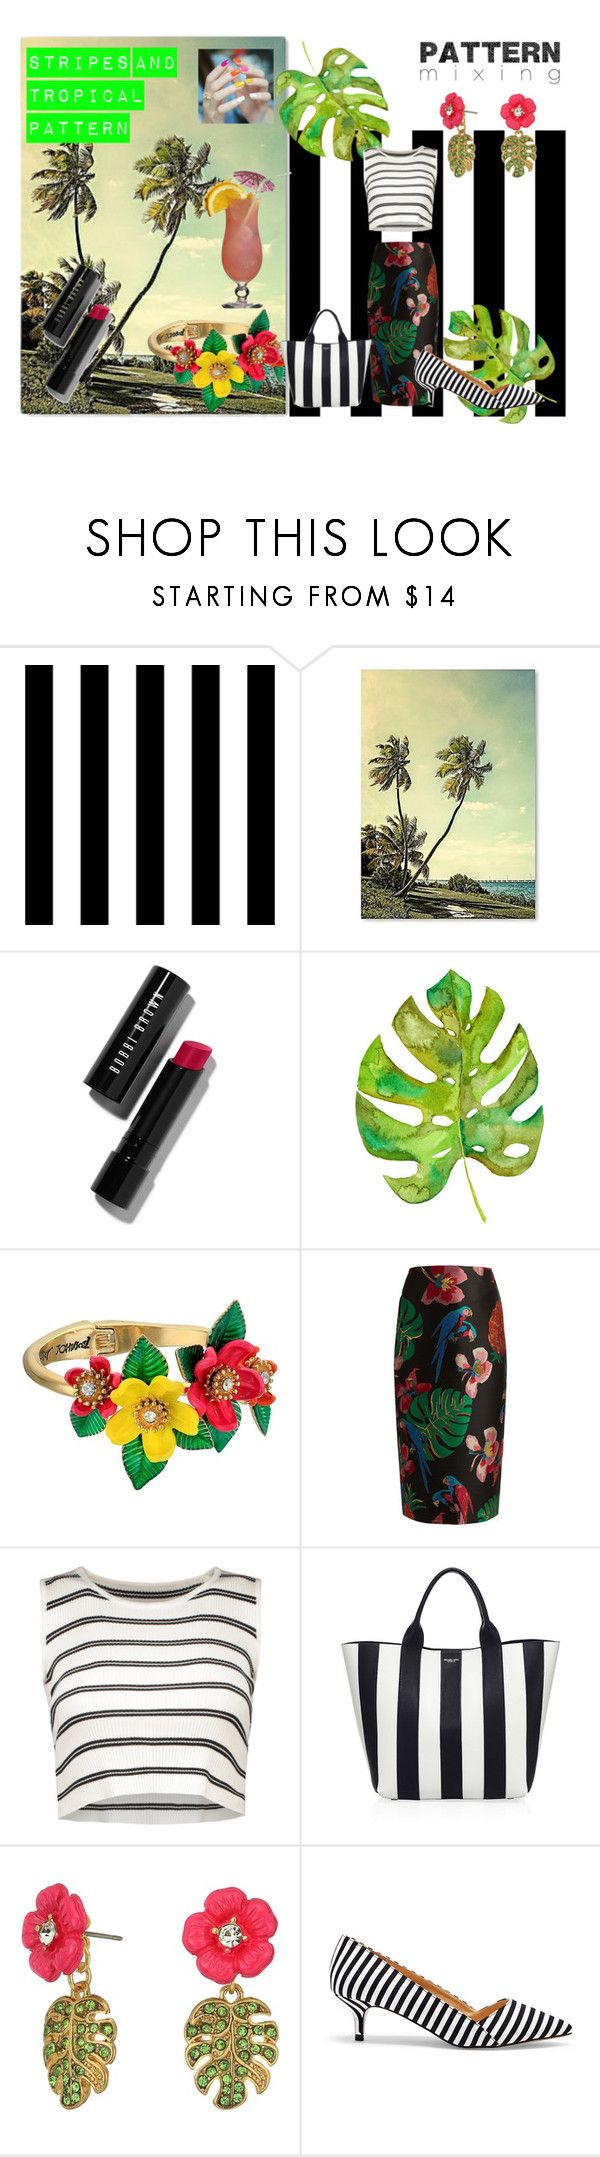 """stripes and tropical pattern"" by emily-dickson-1 ❤ liked on Polyvore featuring Tempaper, Bobbi Brown Cosmetics, Betsey Johnson, Valentino, Michael Kors, Sole Society and petternmixing"